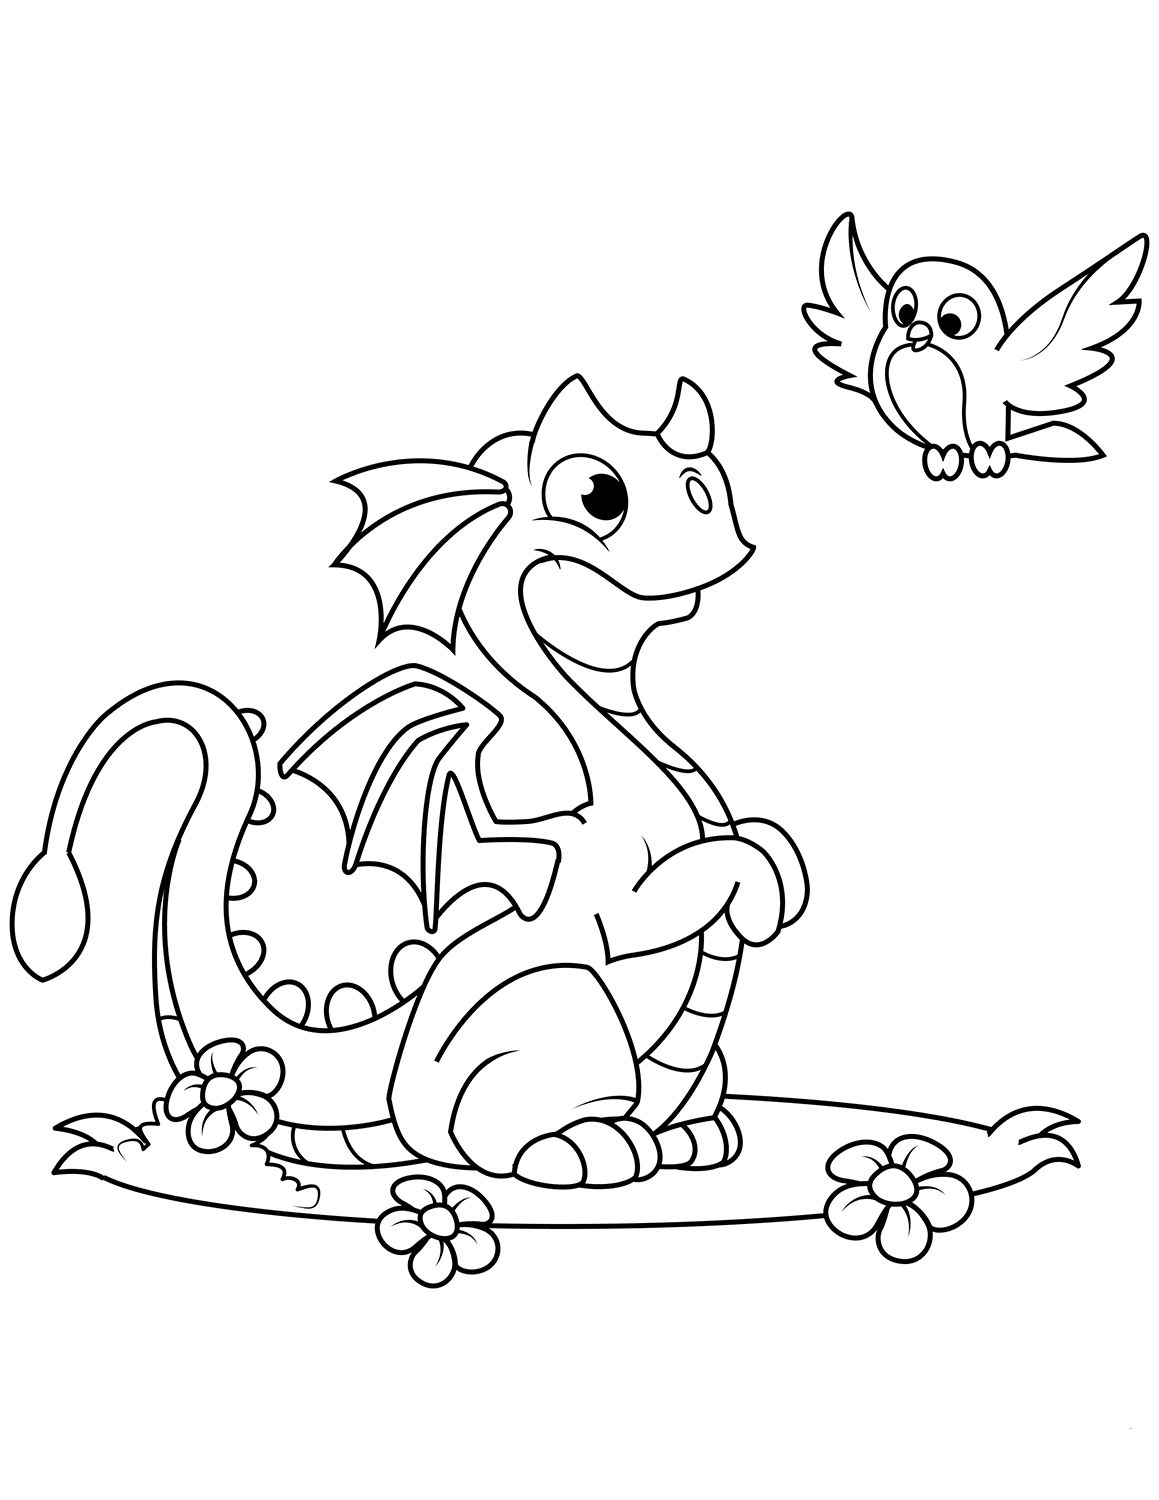 coloring pages dragons printable dragon coloring pages for kids cool2bkids dragons coloring pages